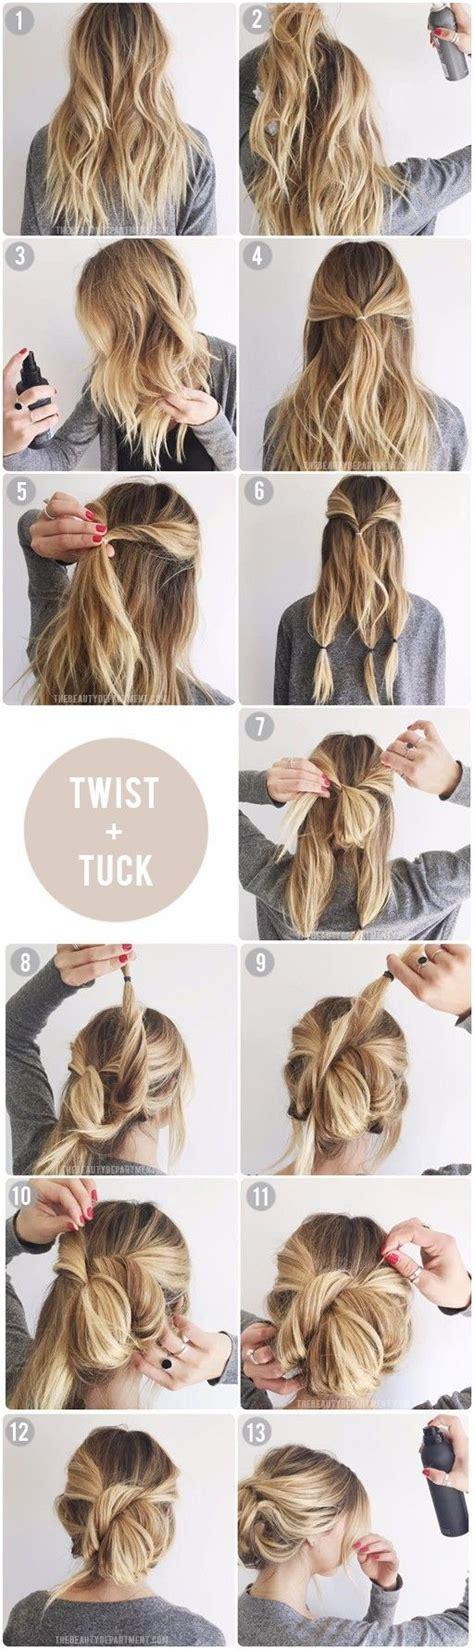 easy updos for waitresses with long hair 25 best ideas about easy updo on pinterest easy chignon